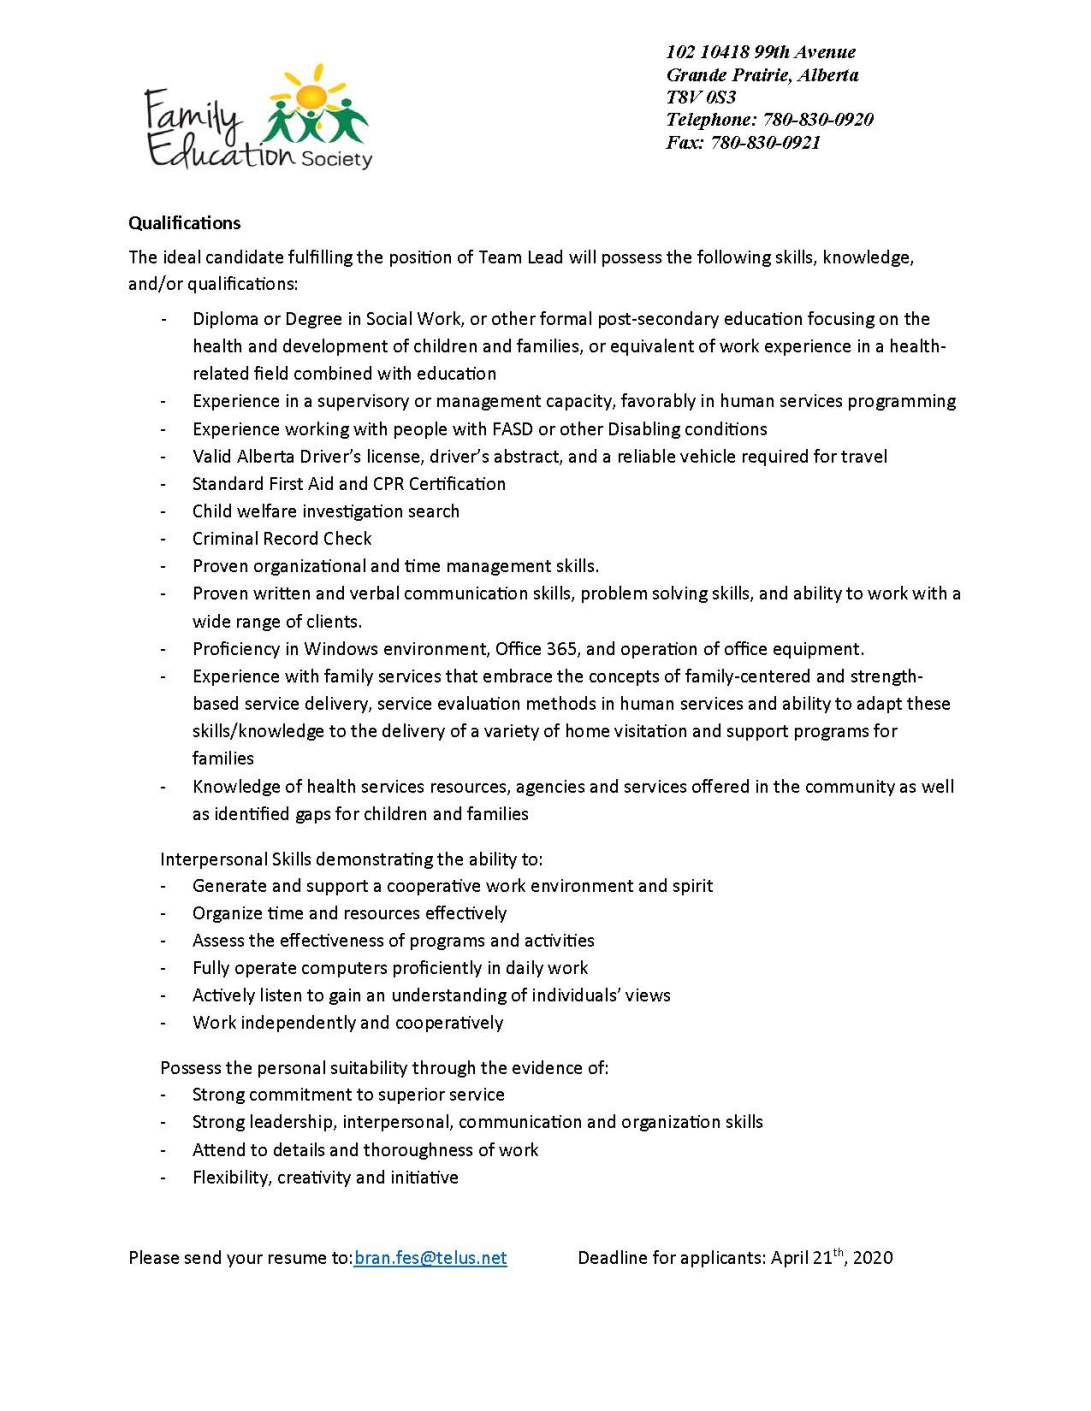 FASD Team Lead Job posting_Page_2